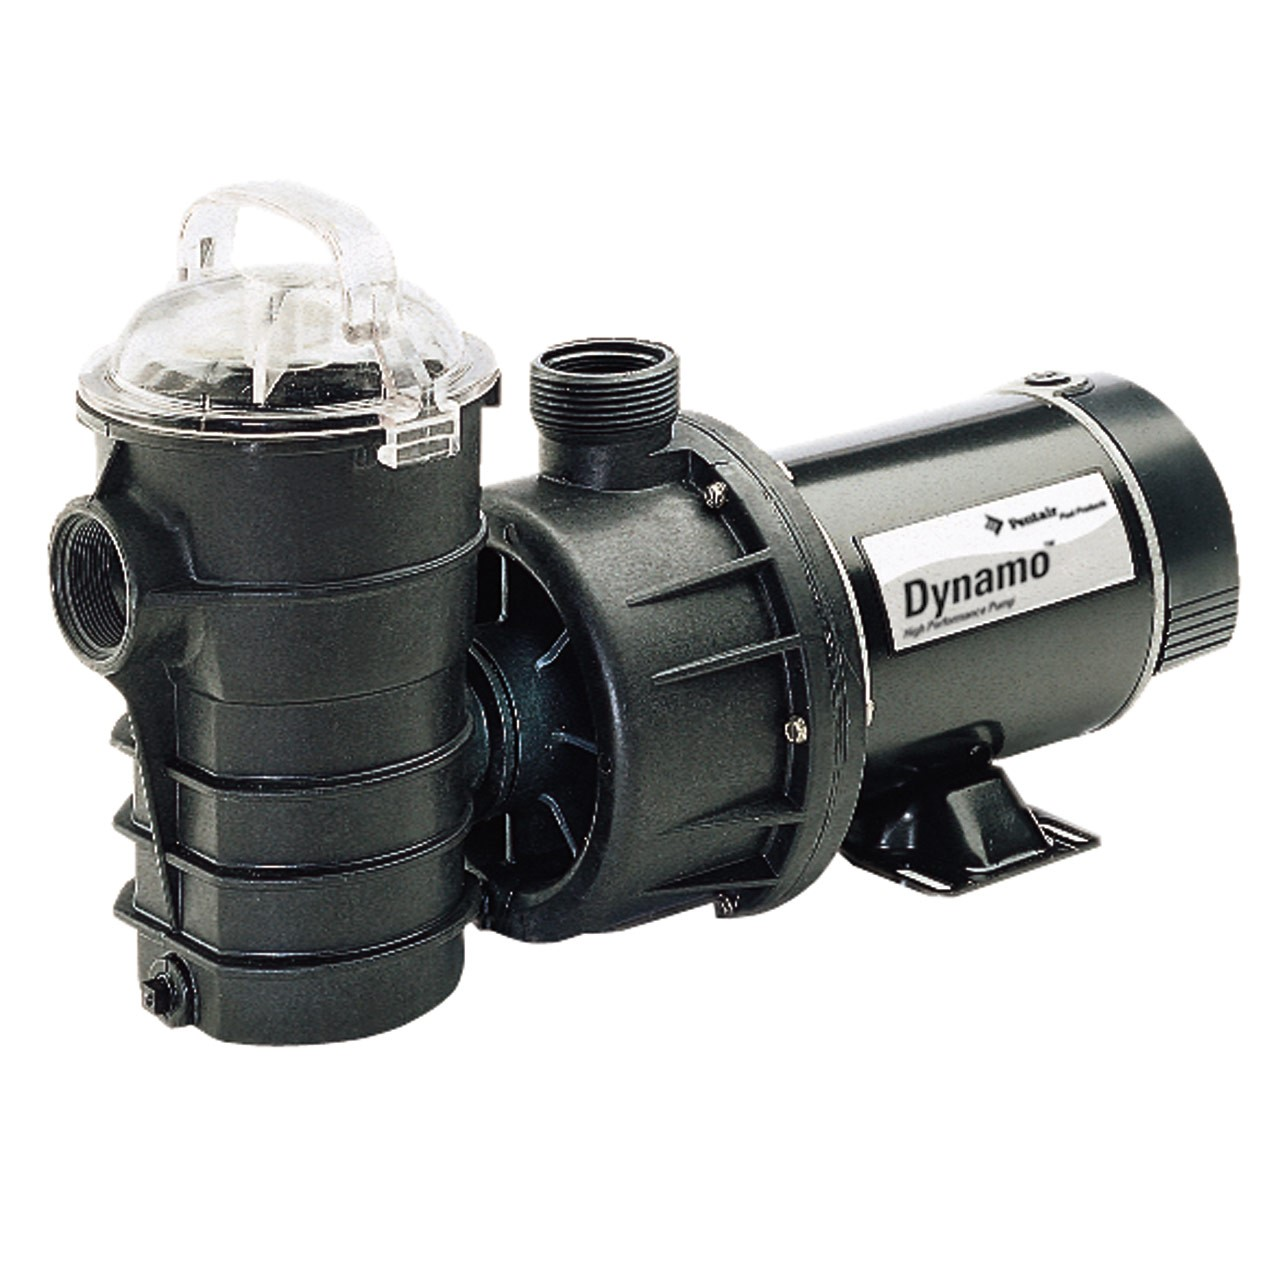 hight resolution of pentair 340210 dynamo above ground swimming pool pump 1 5 hp w 3 cord 115v walmart com